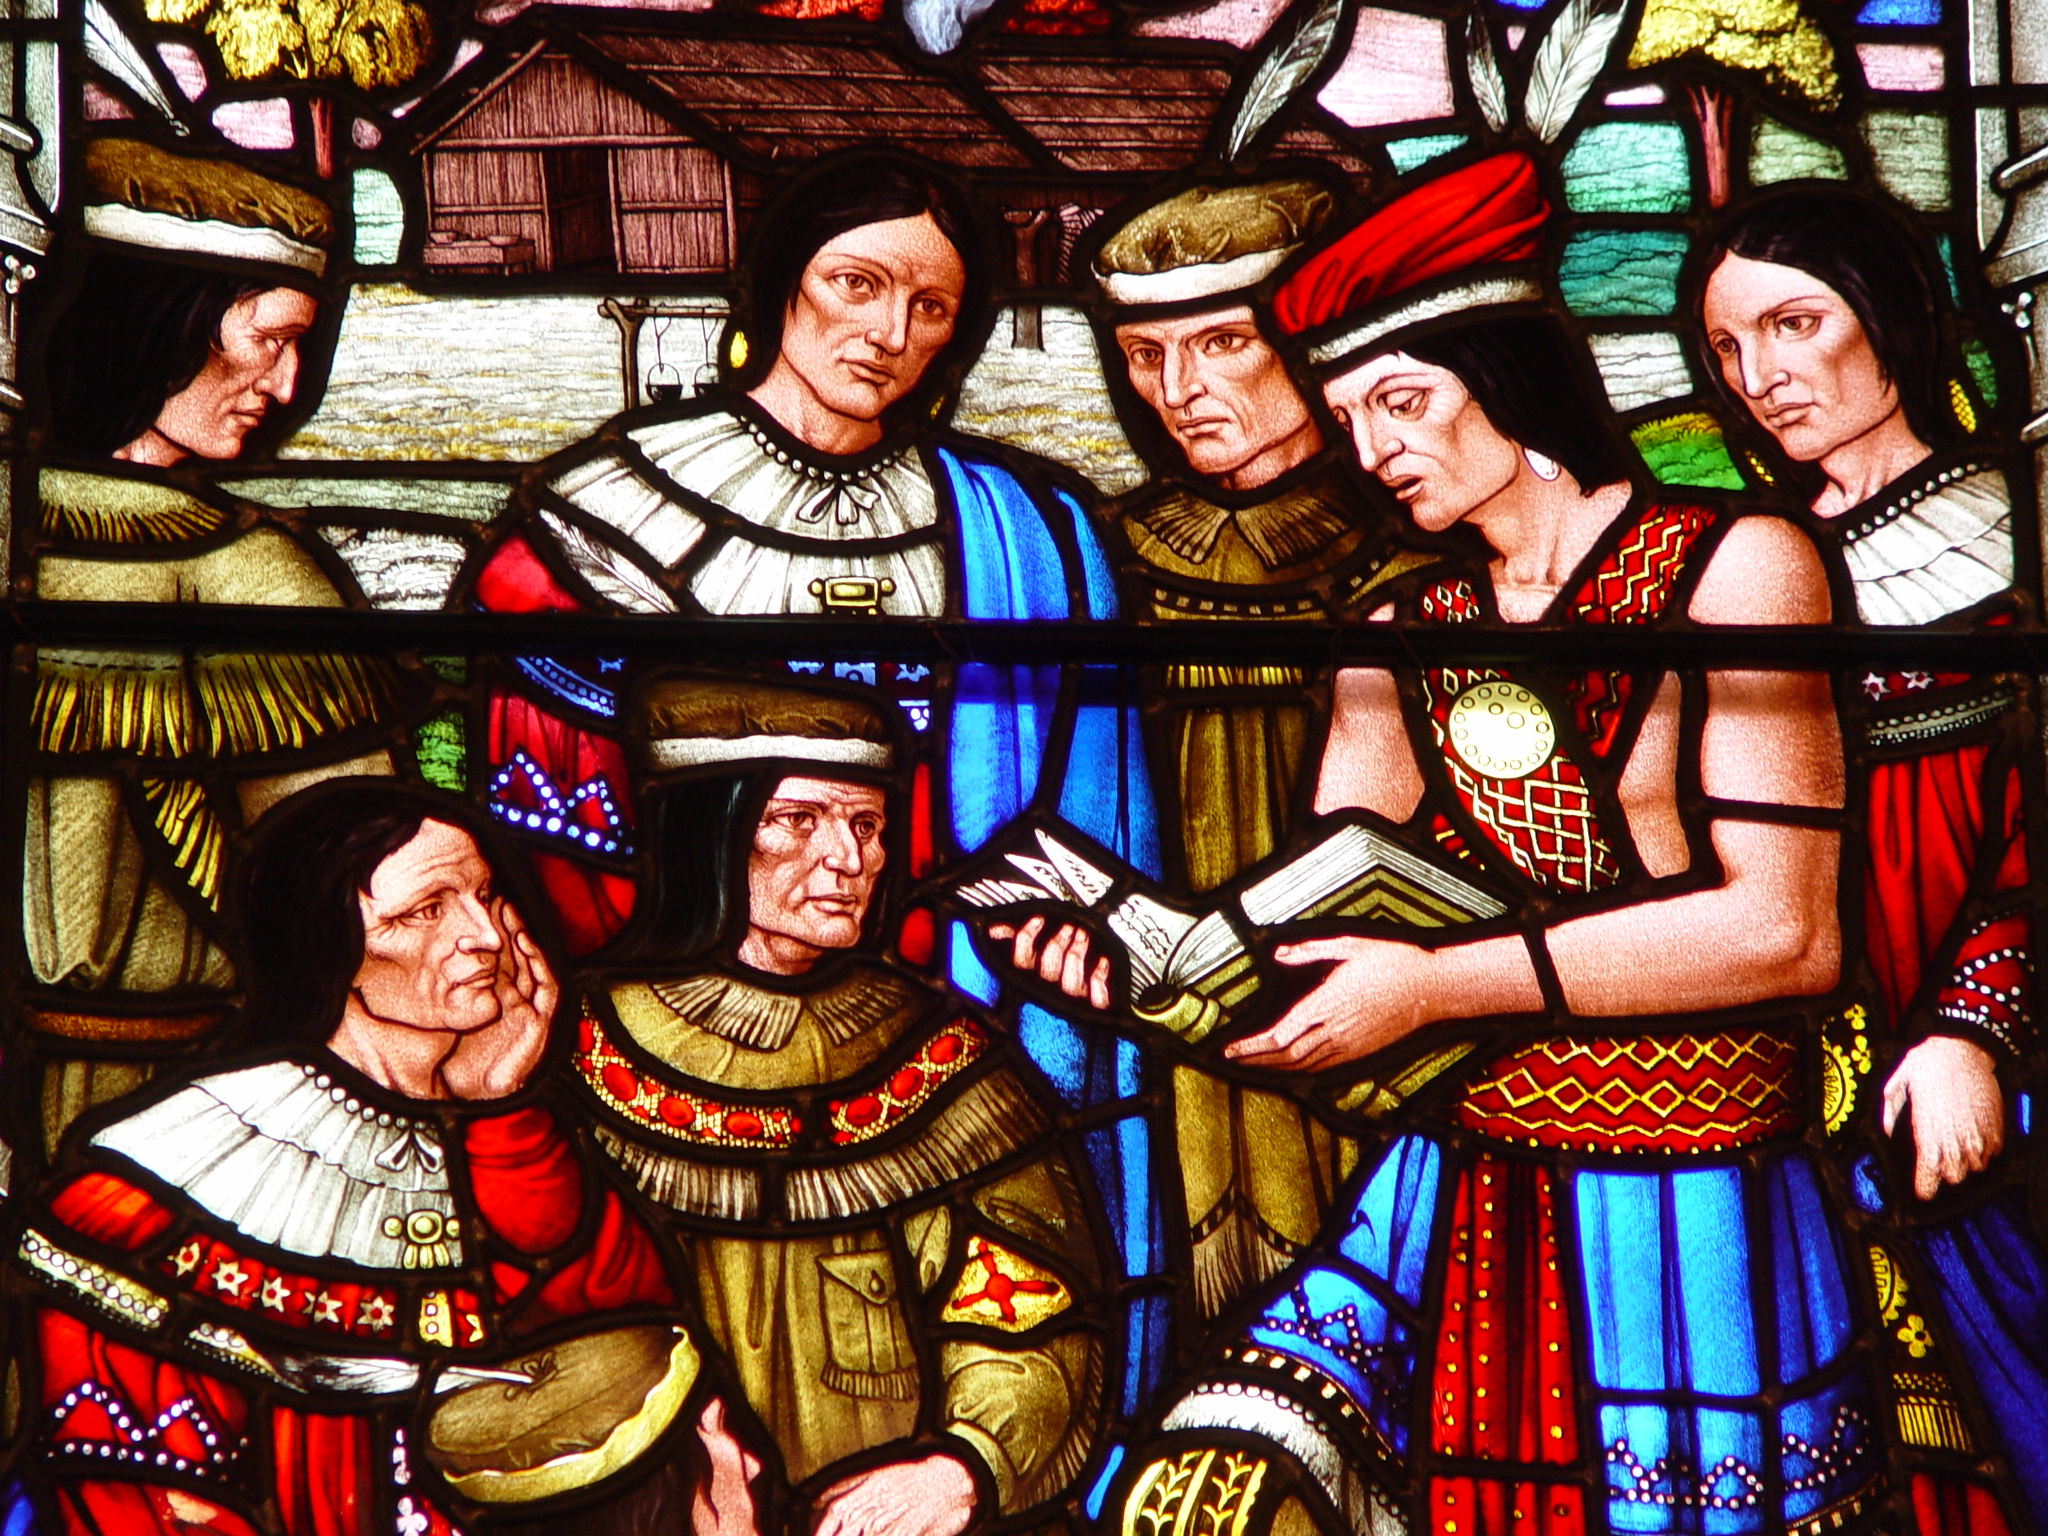 Stain glass depicting the Mohawk people reading the Gospel in community